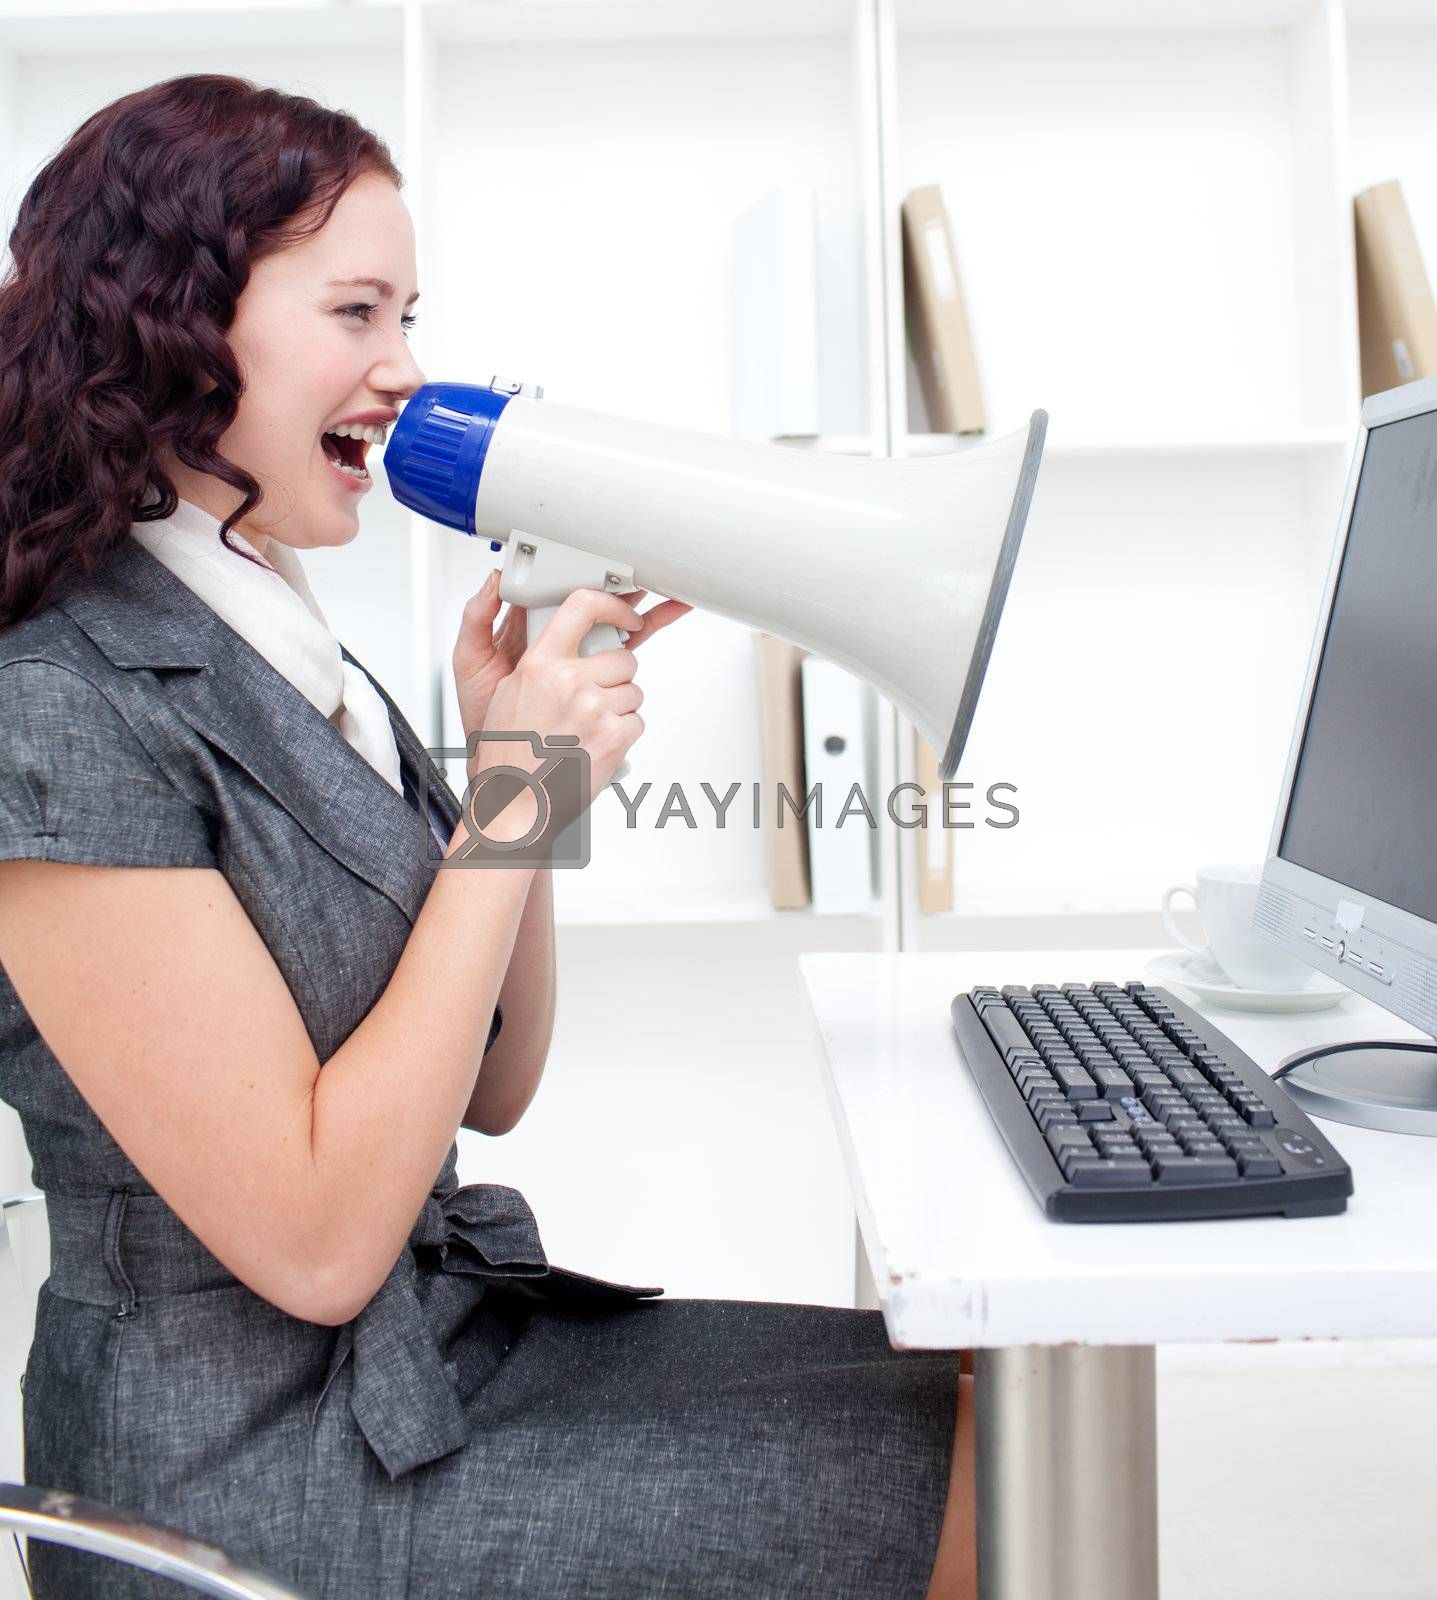 Businesswoman yelling through a megaphone in office